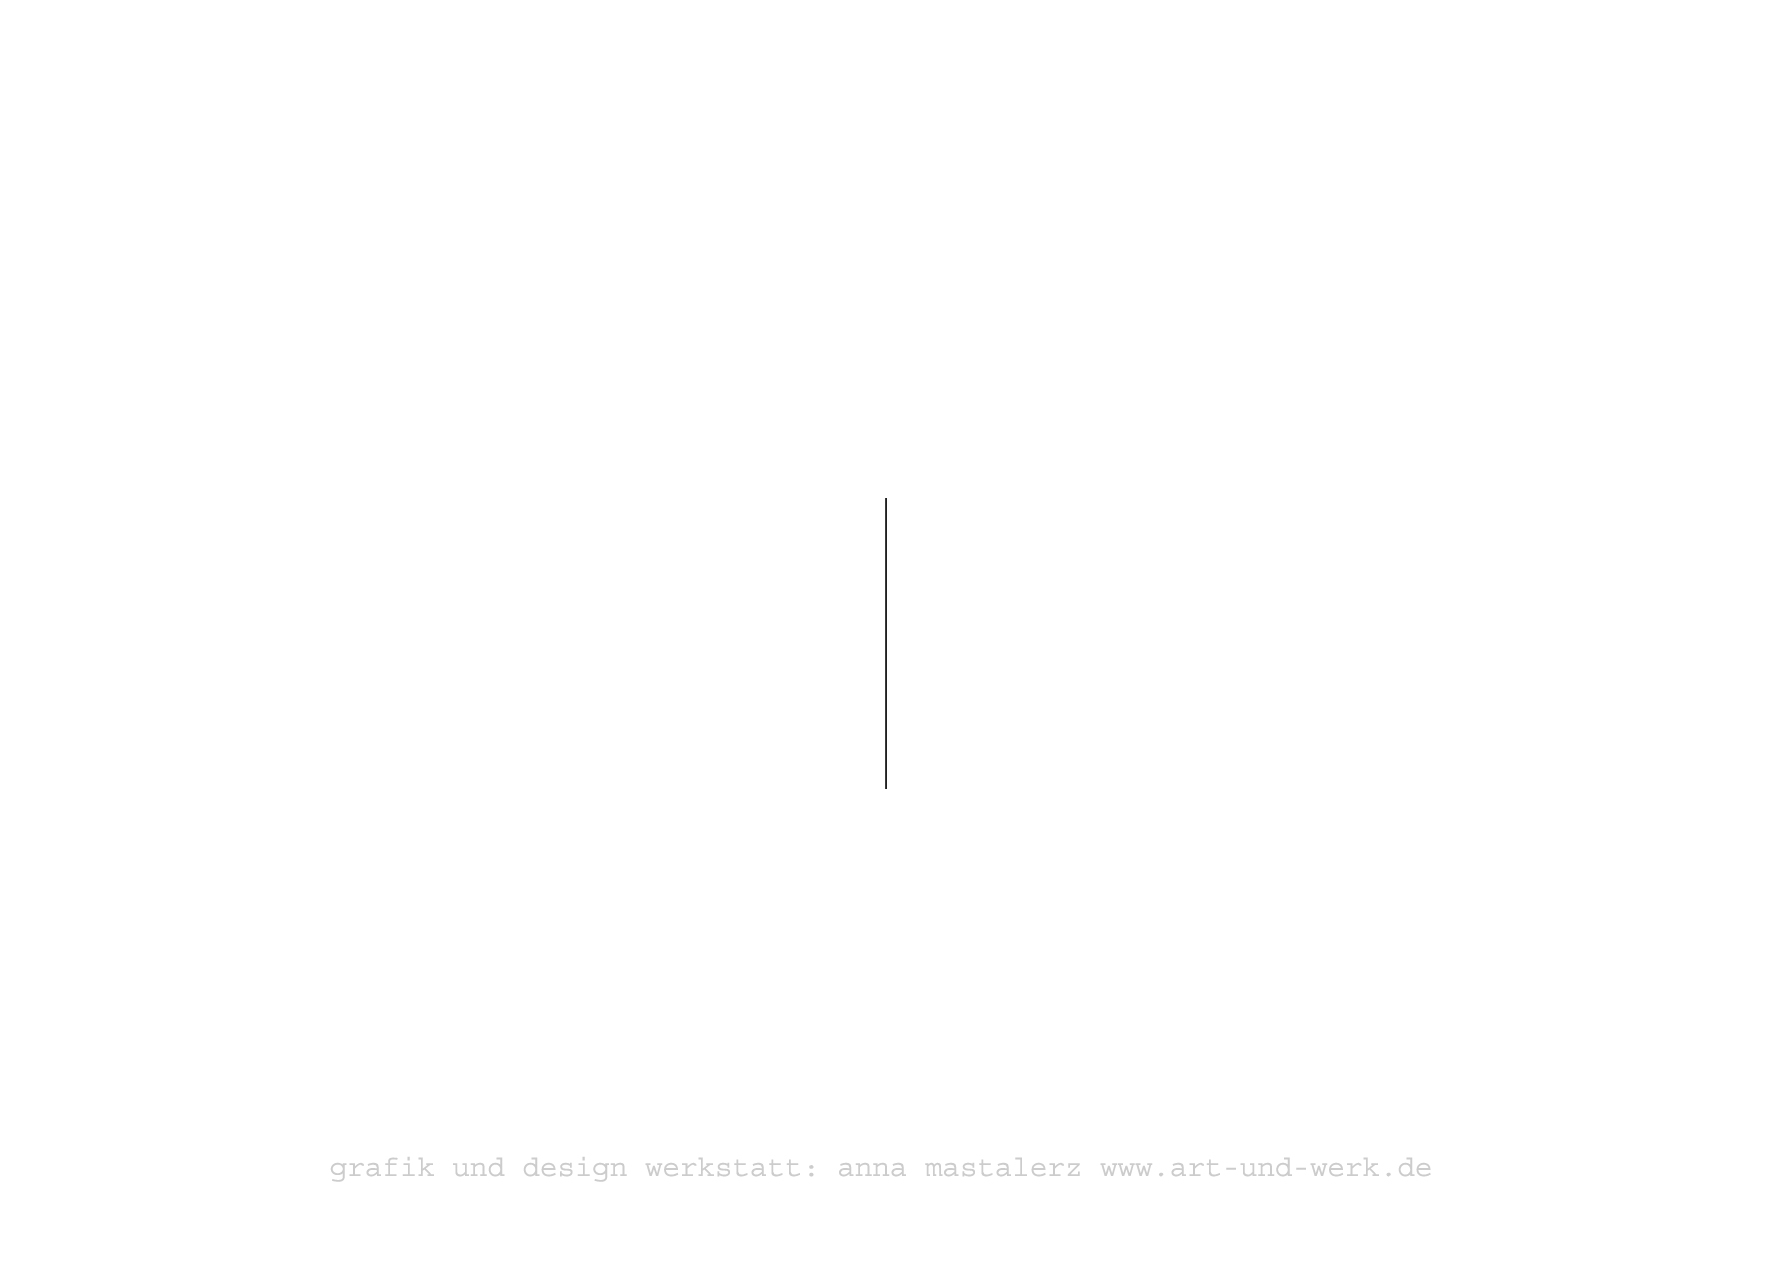 DOWNLOAD_PDF_Postkarten_A6_art_und_werk